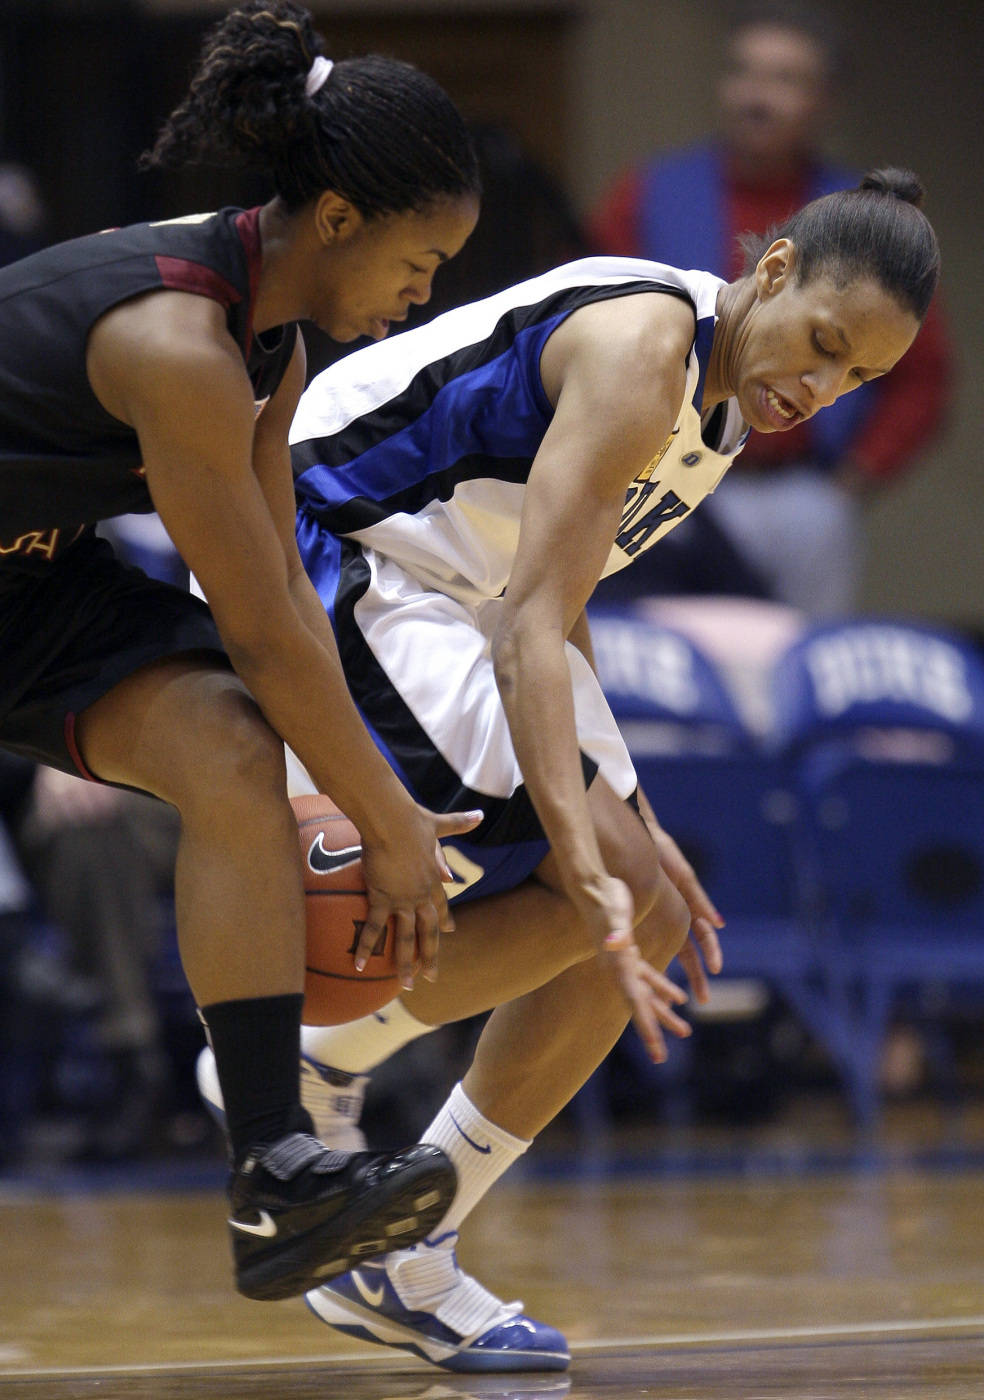 Florida State's Angel Gray and Duke's Jasmine Thomas battle for the ball.